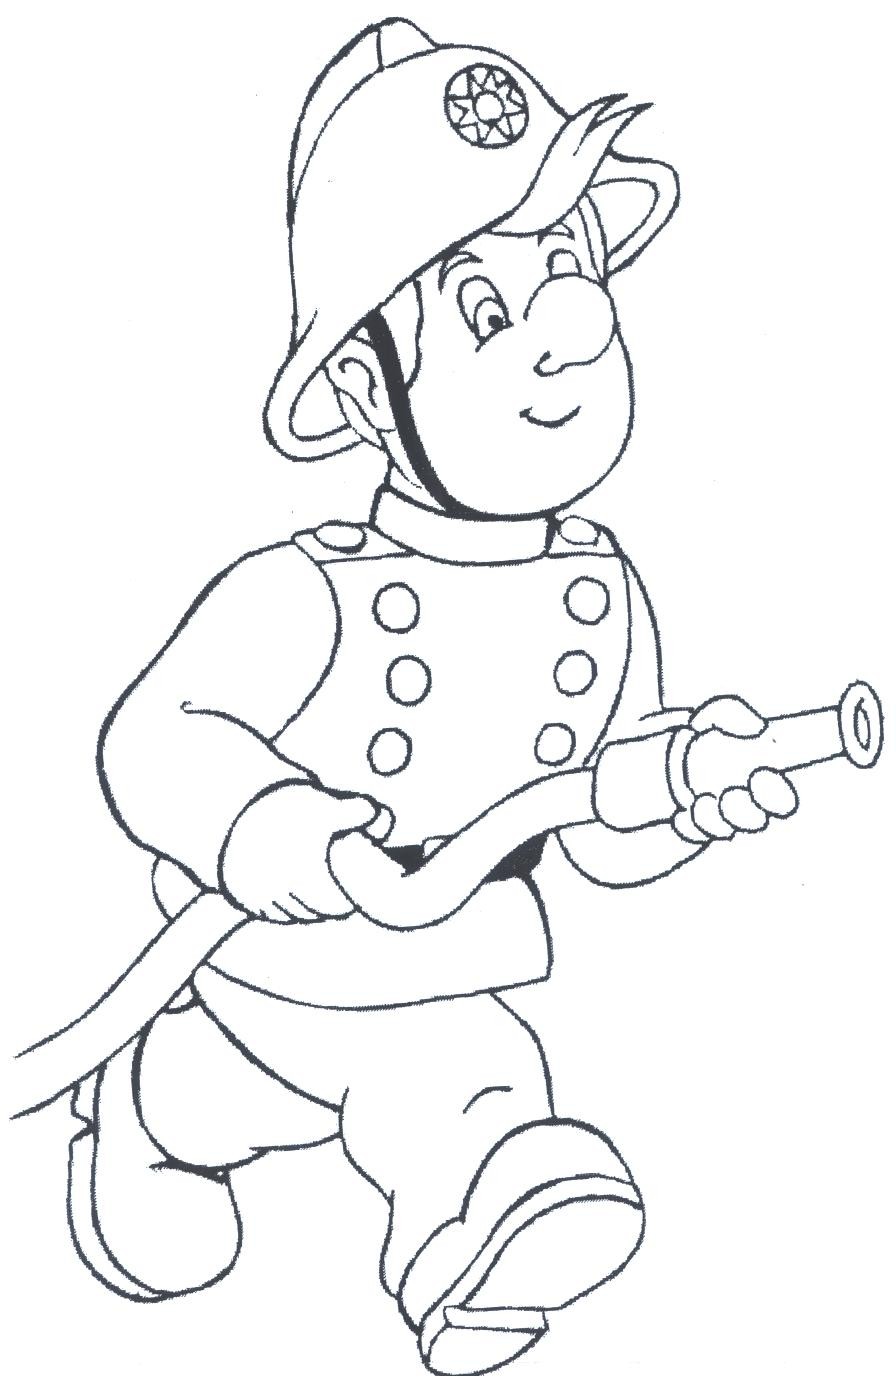 Firefighter Coloring Pages For Preschoolers At Getdrawings Com